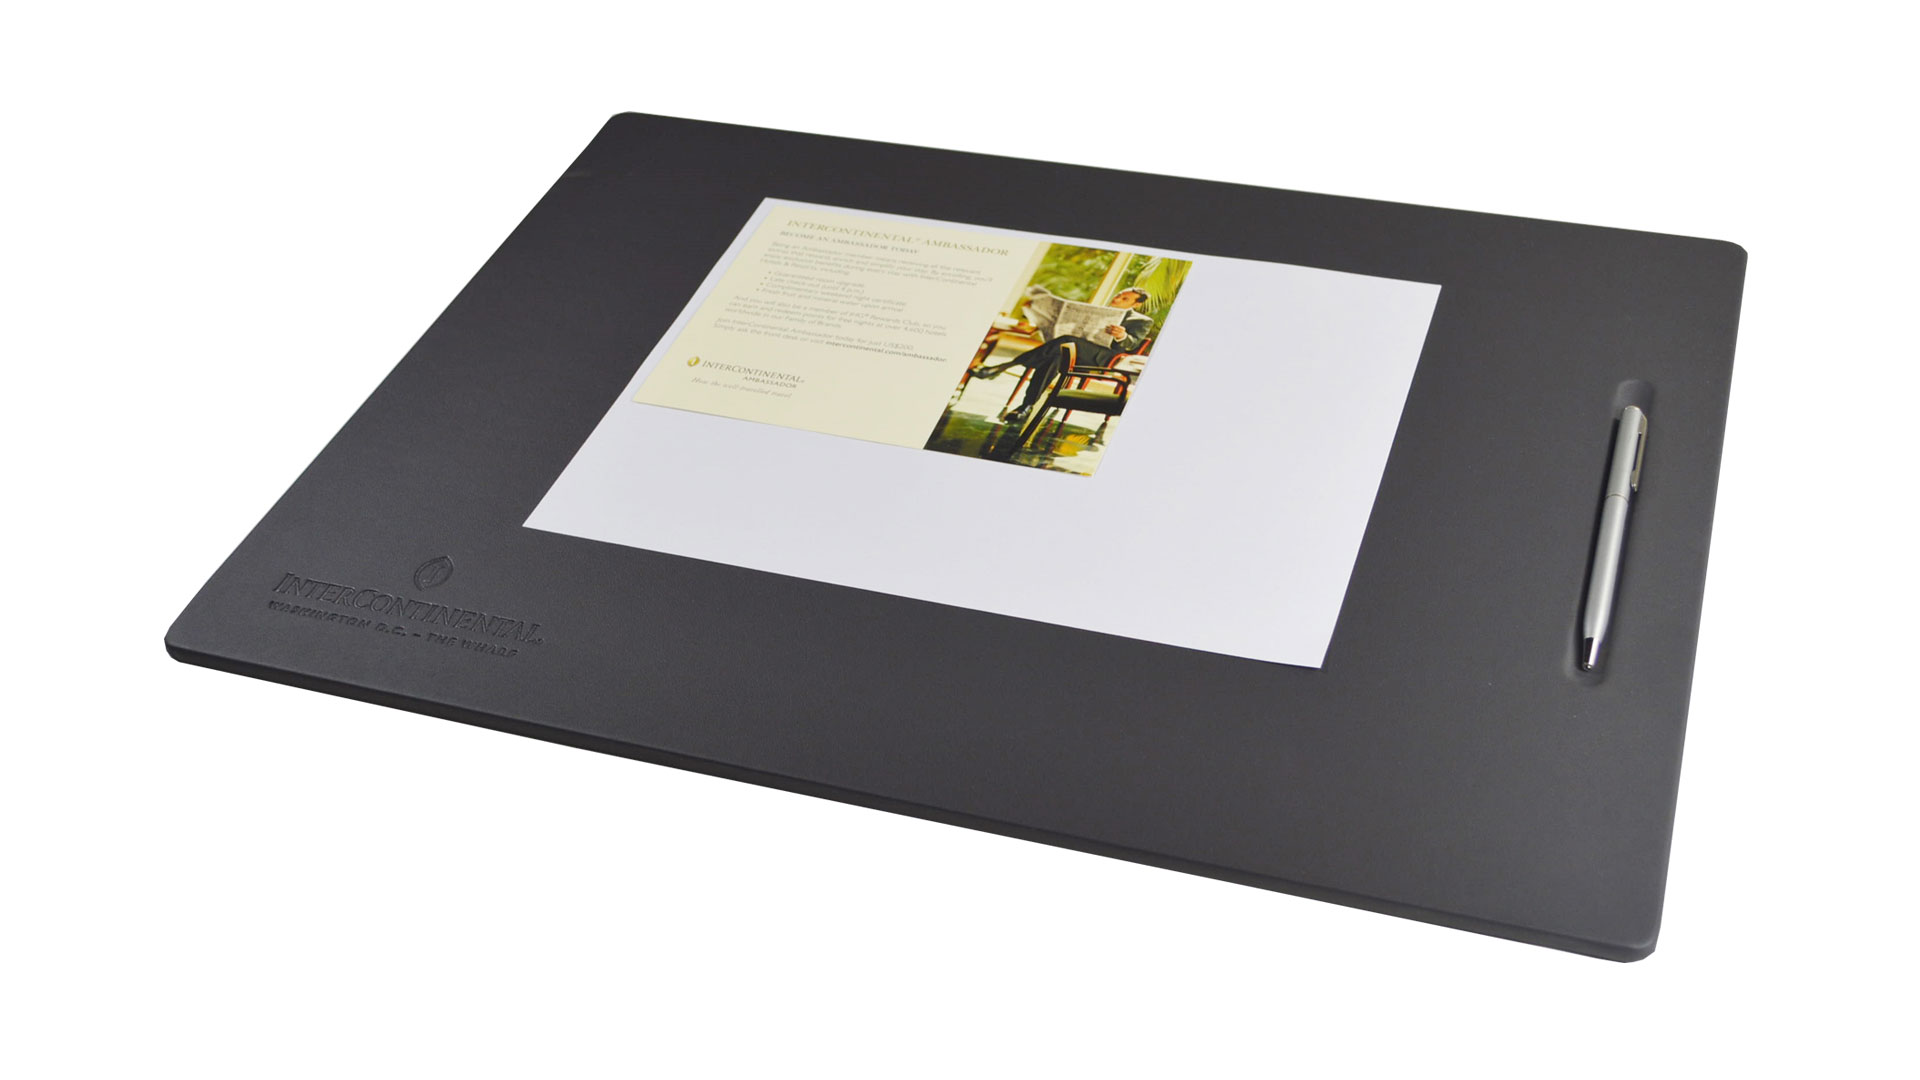 Desk Pads Monastery Hill Bindery - Conference room table mats